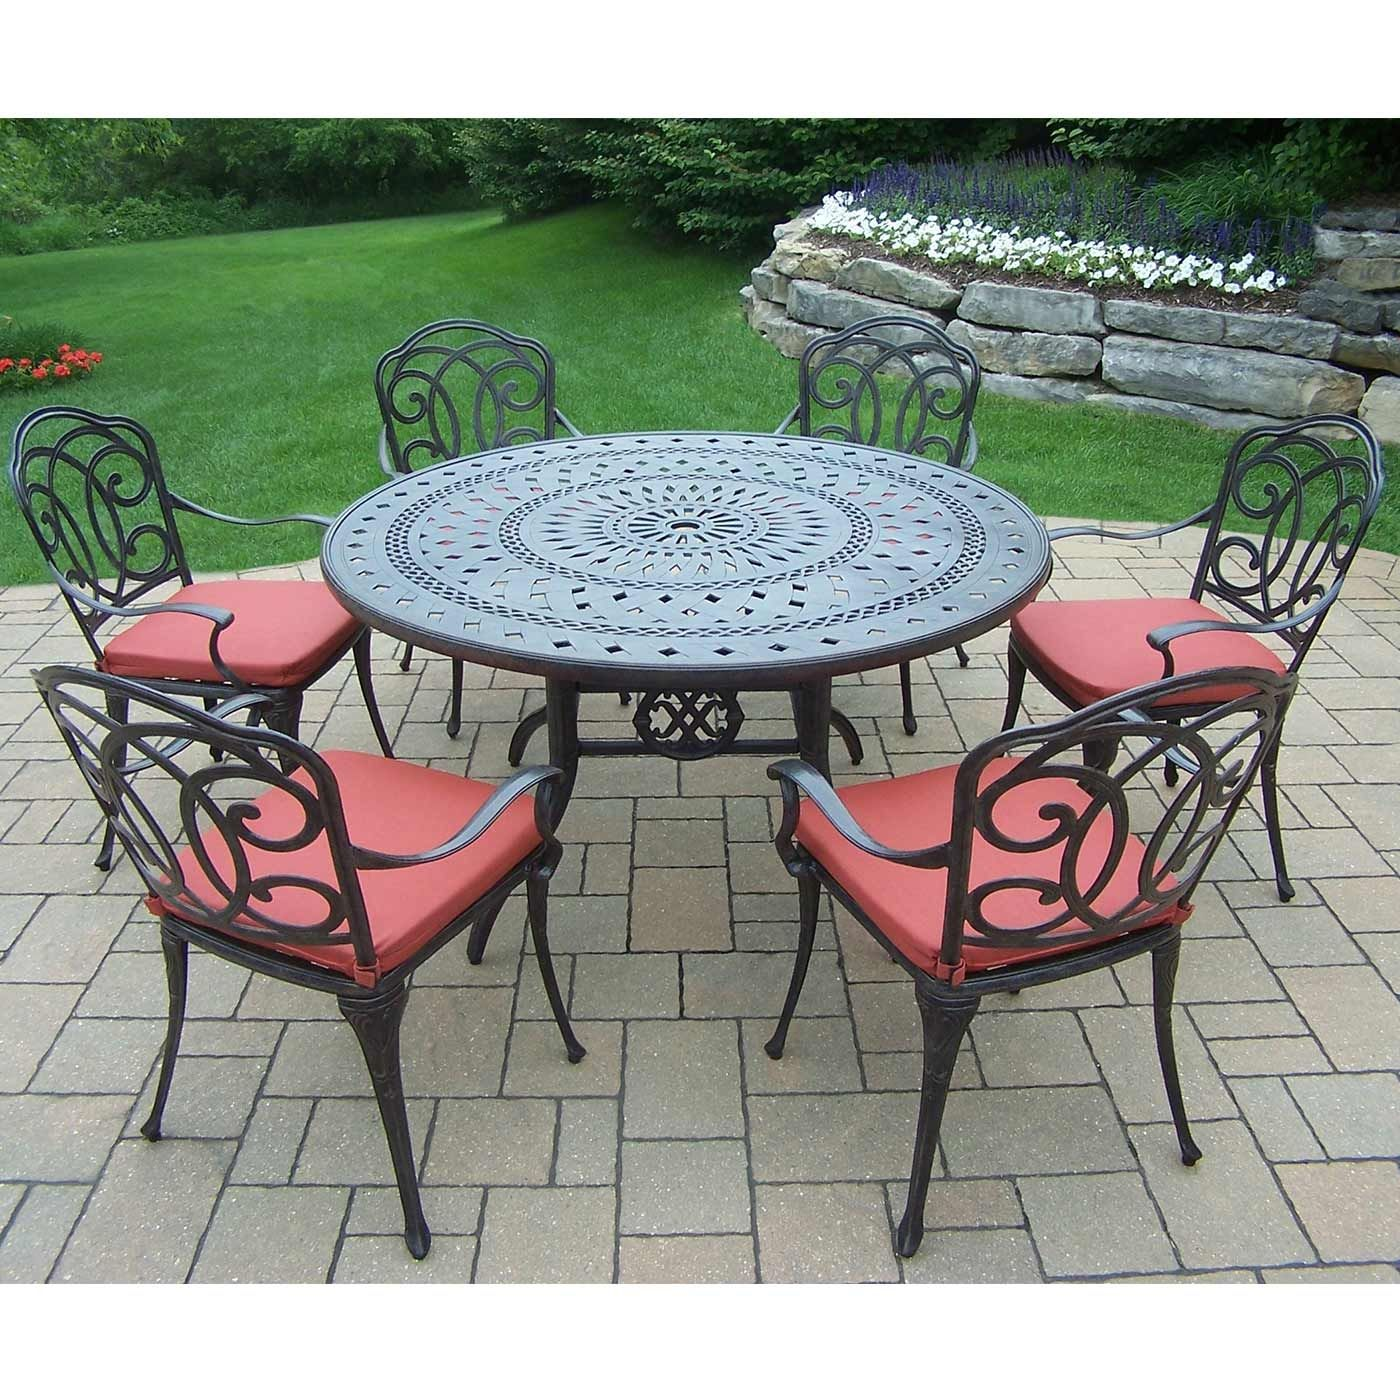 54 round patio table patio decor pinterest